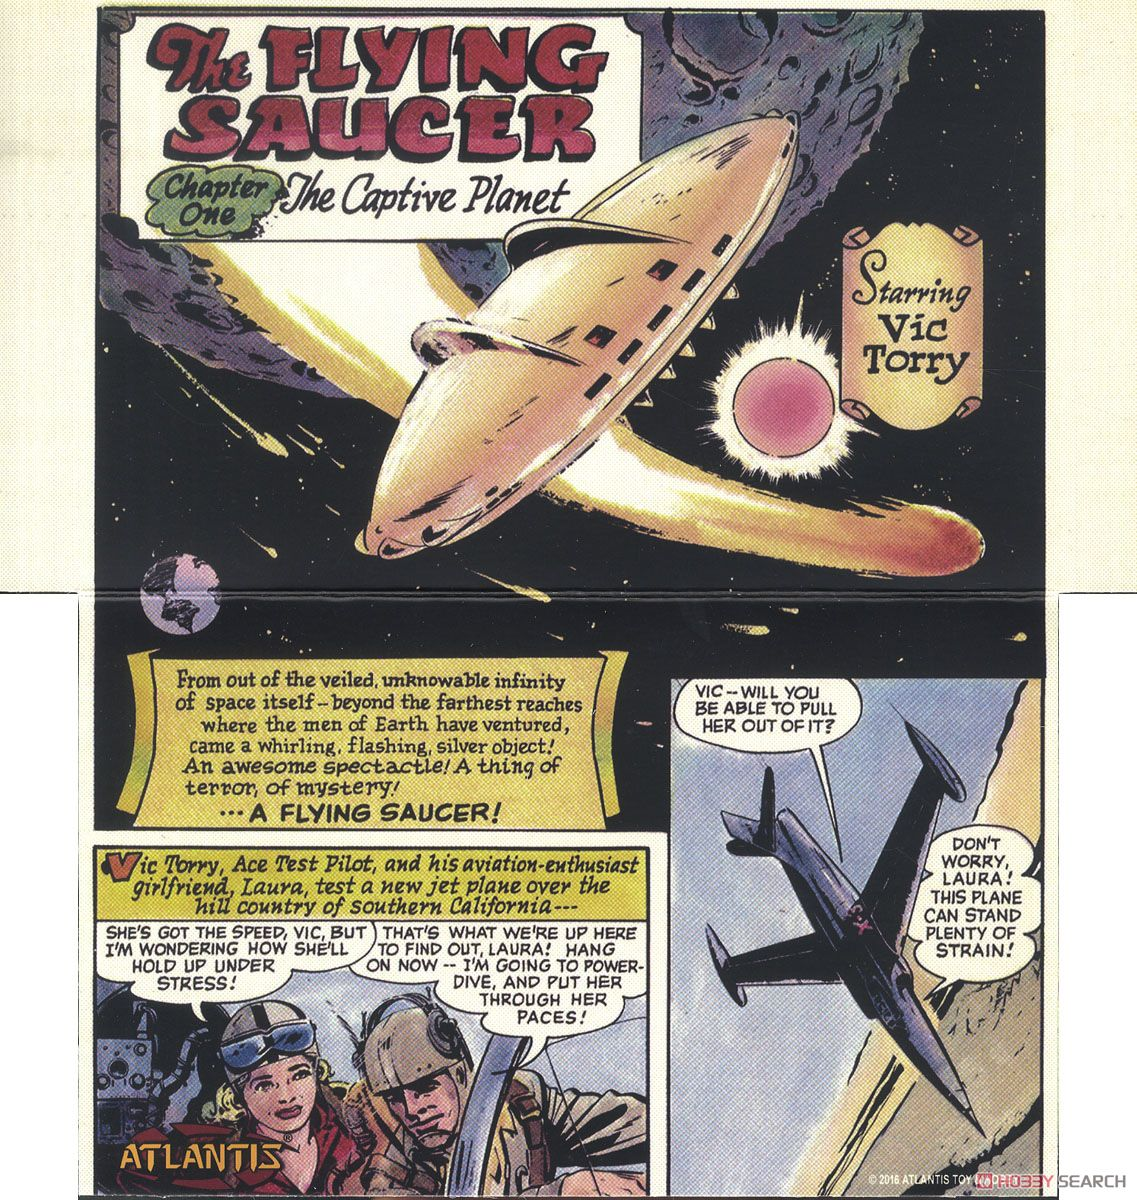 Vic Torry and His Flying Saucer [Plastic model) Contents2